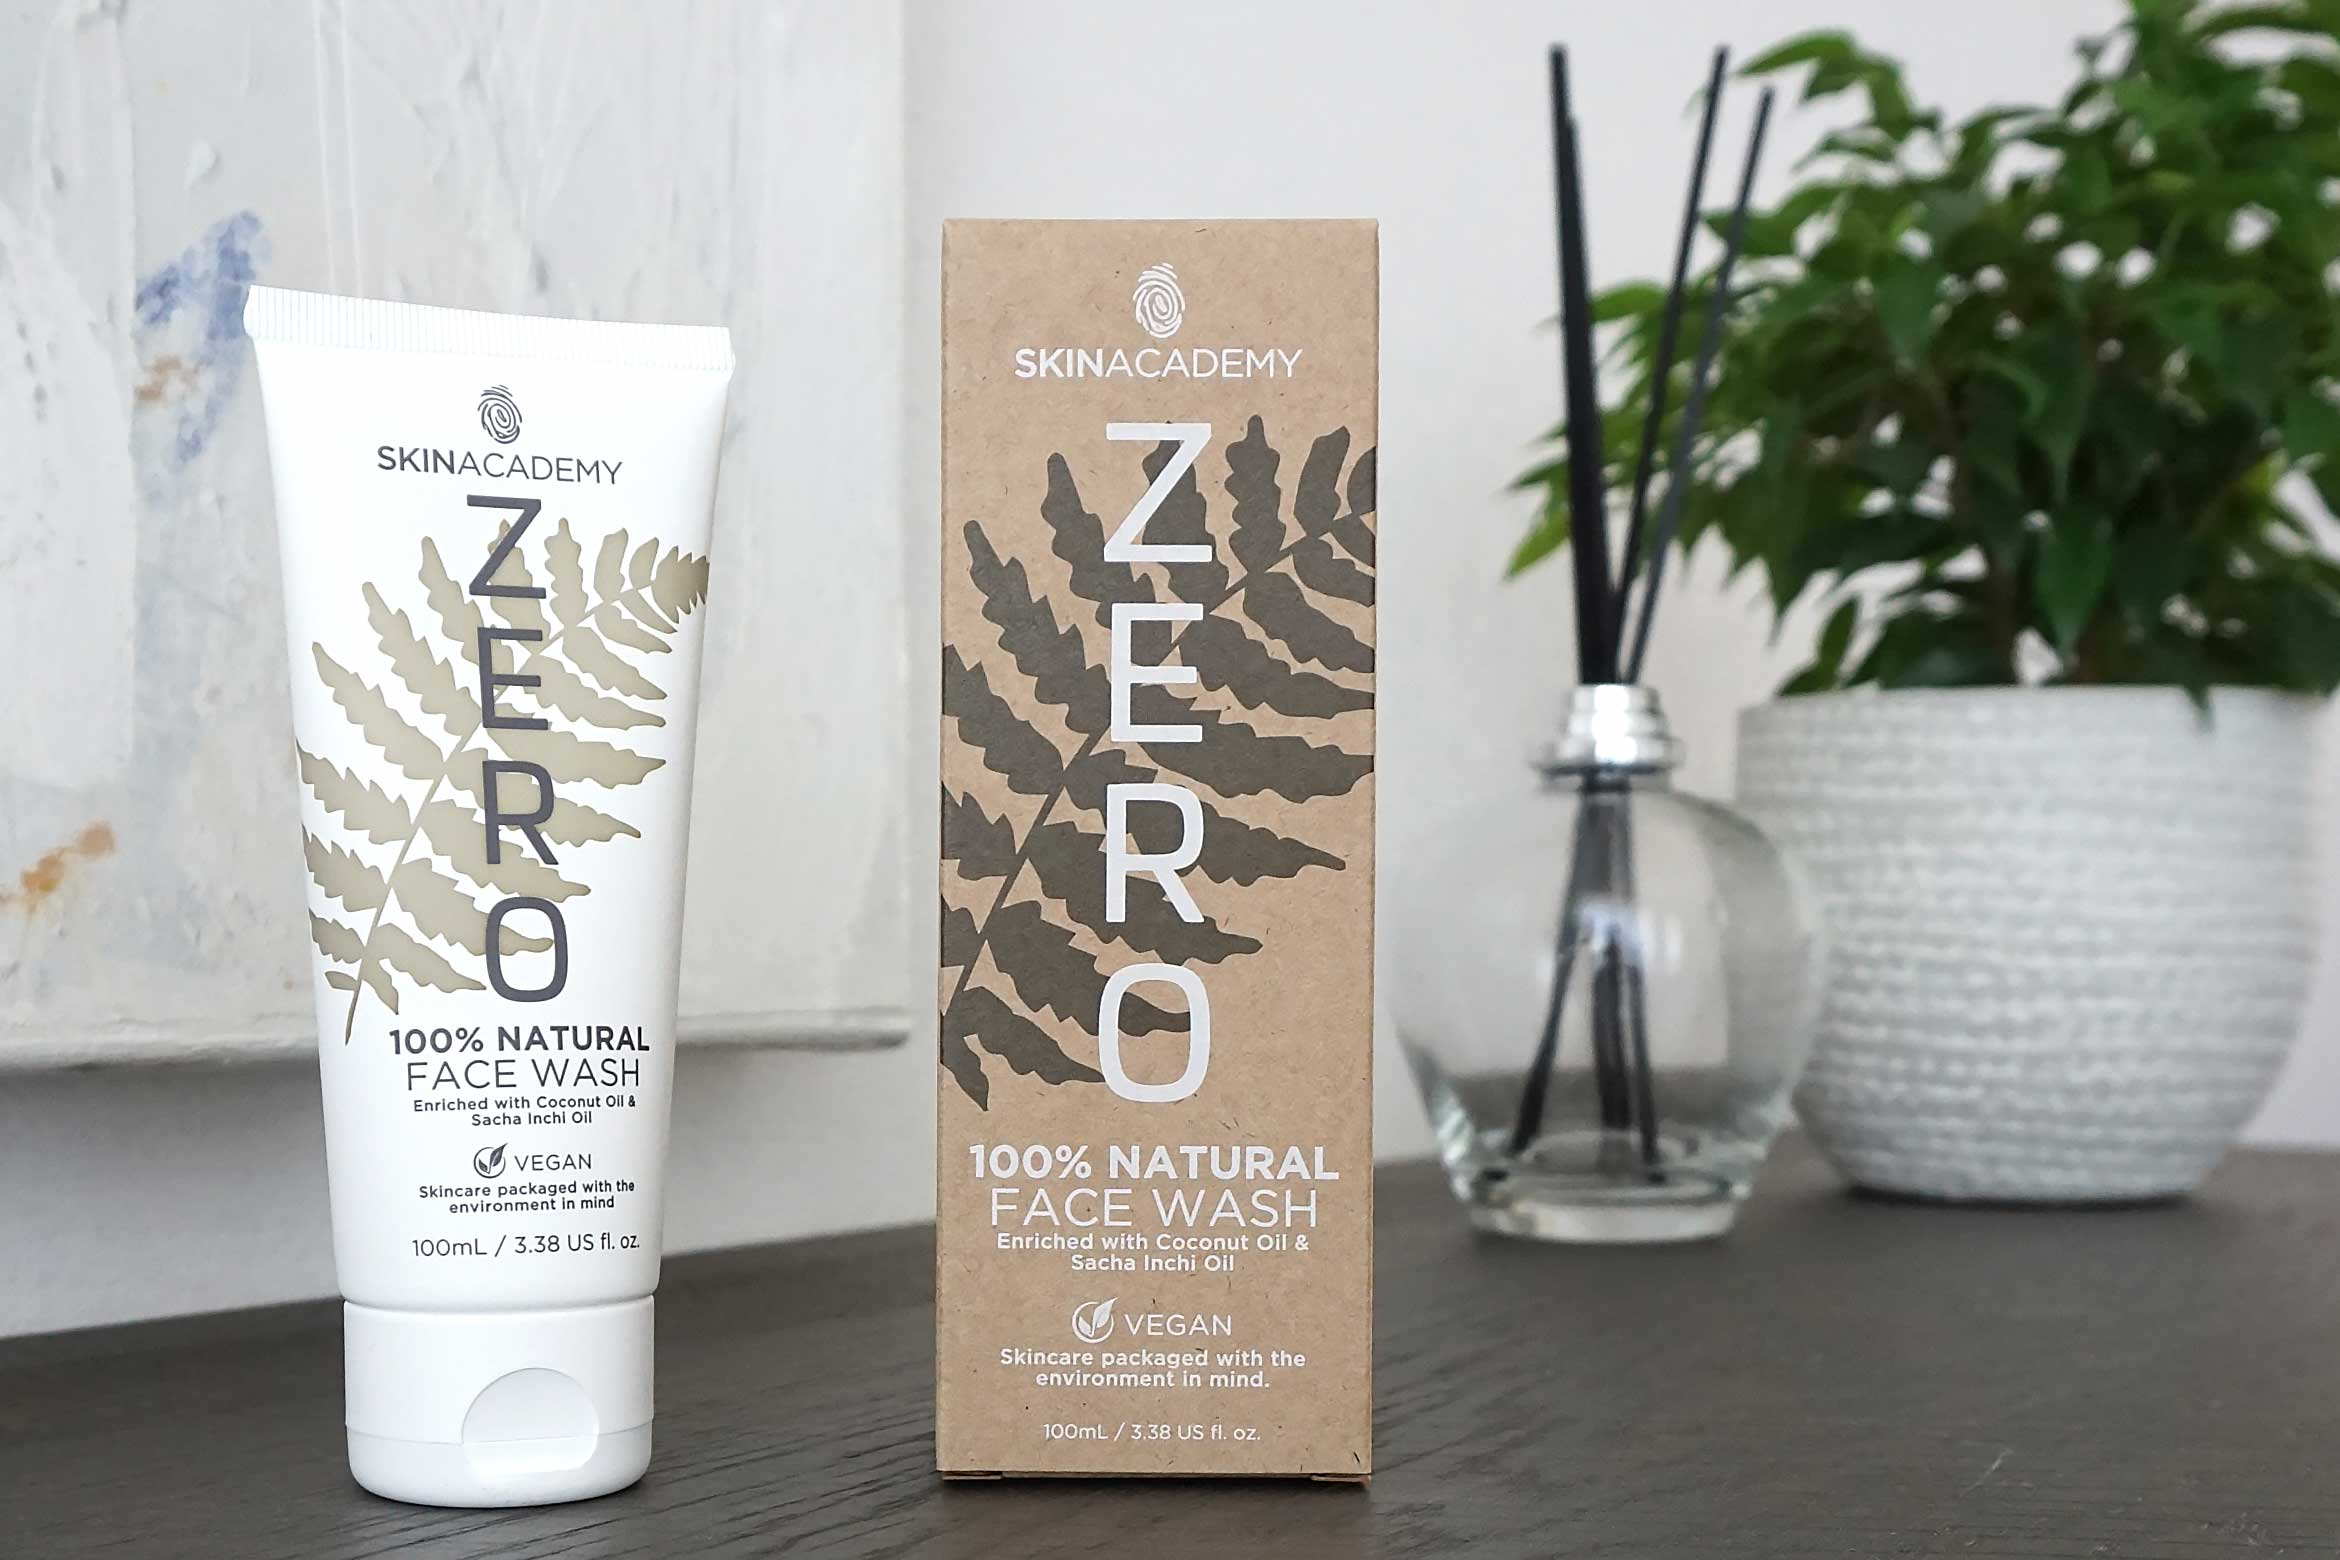 skinacademy zero face wash review